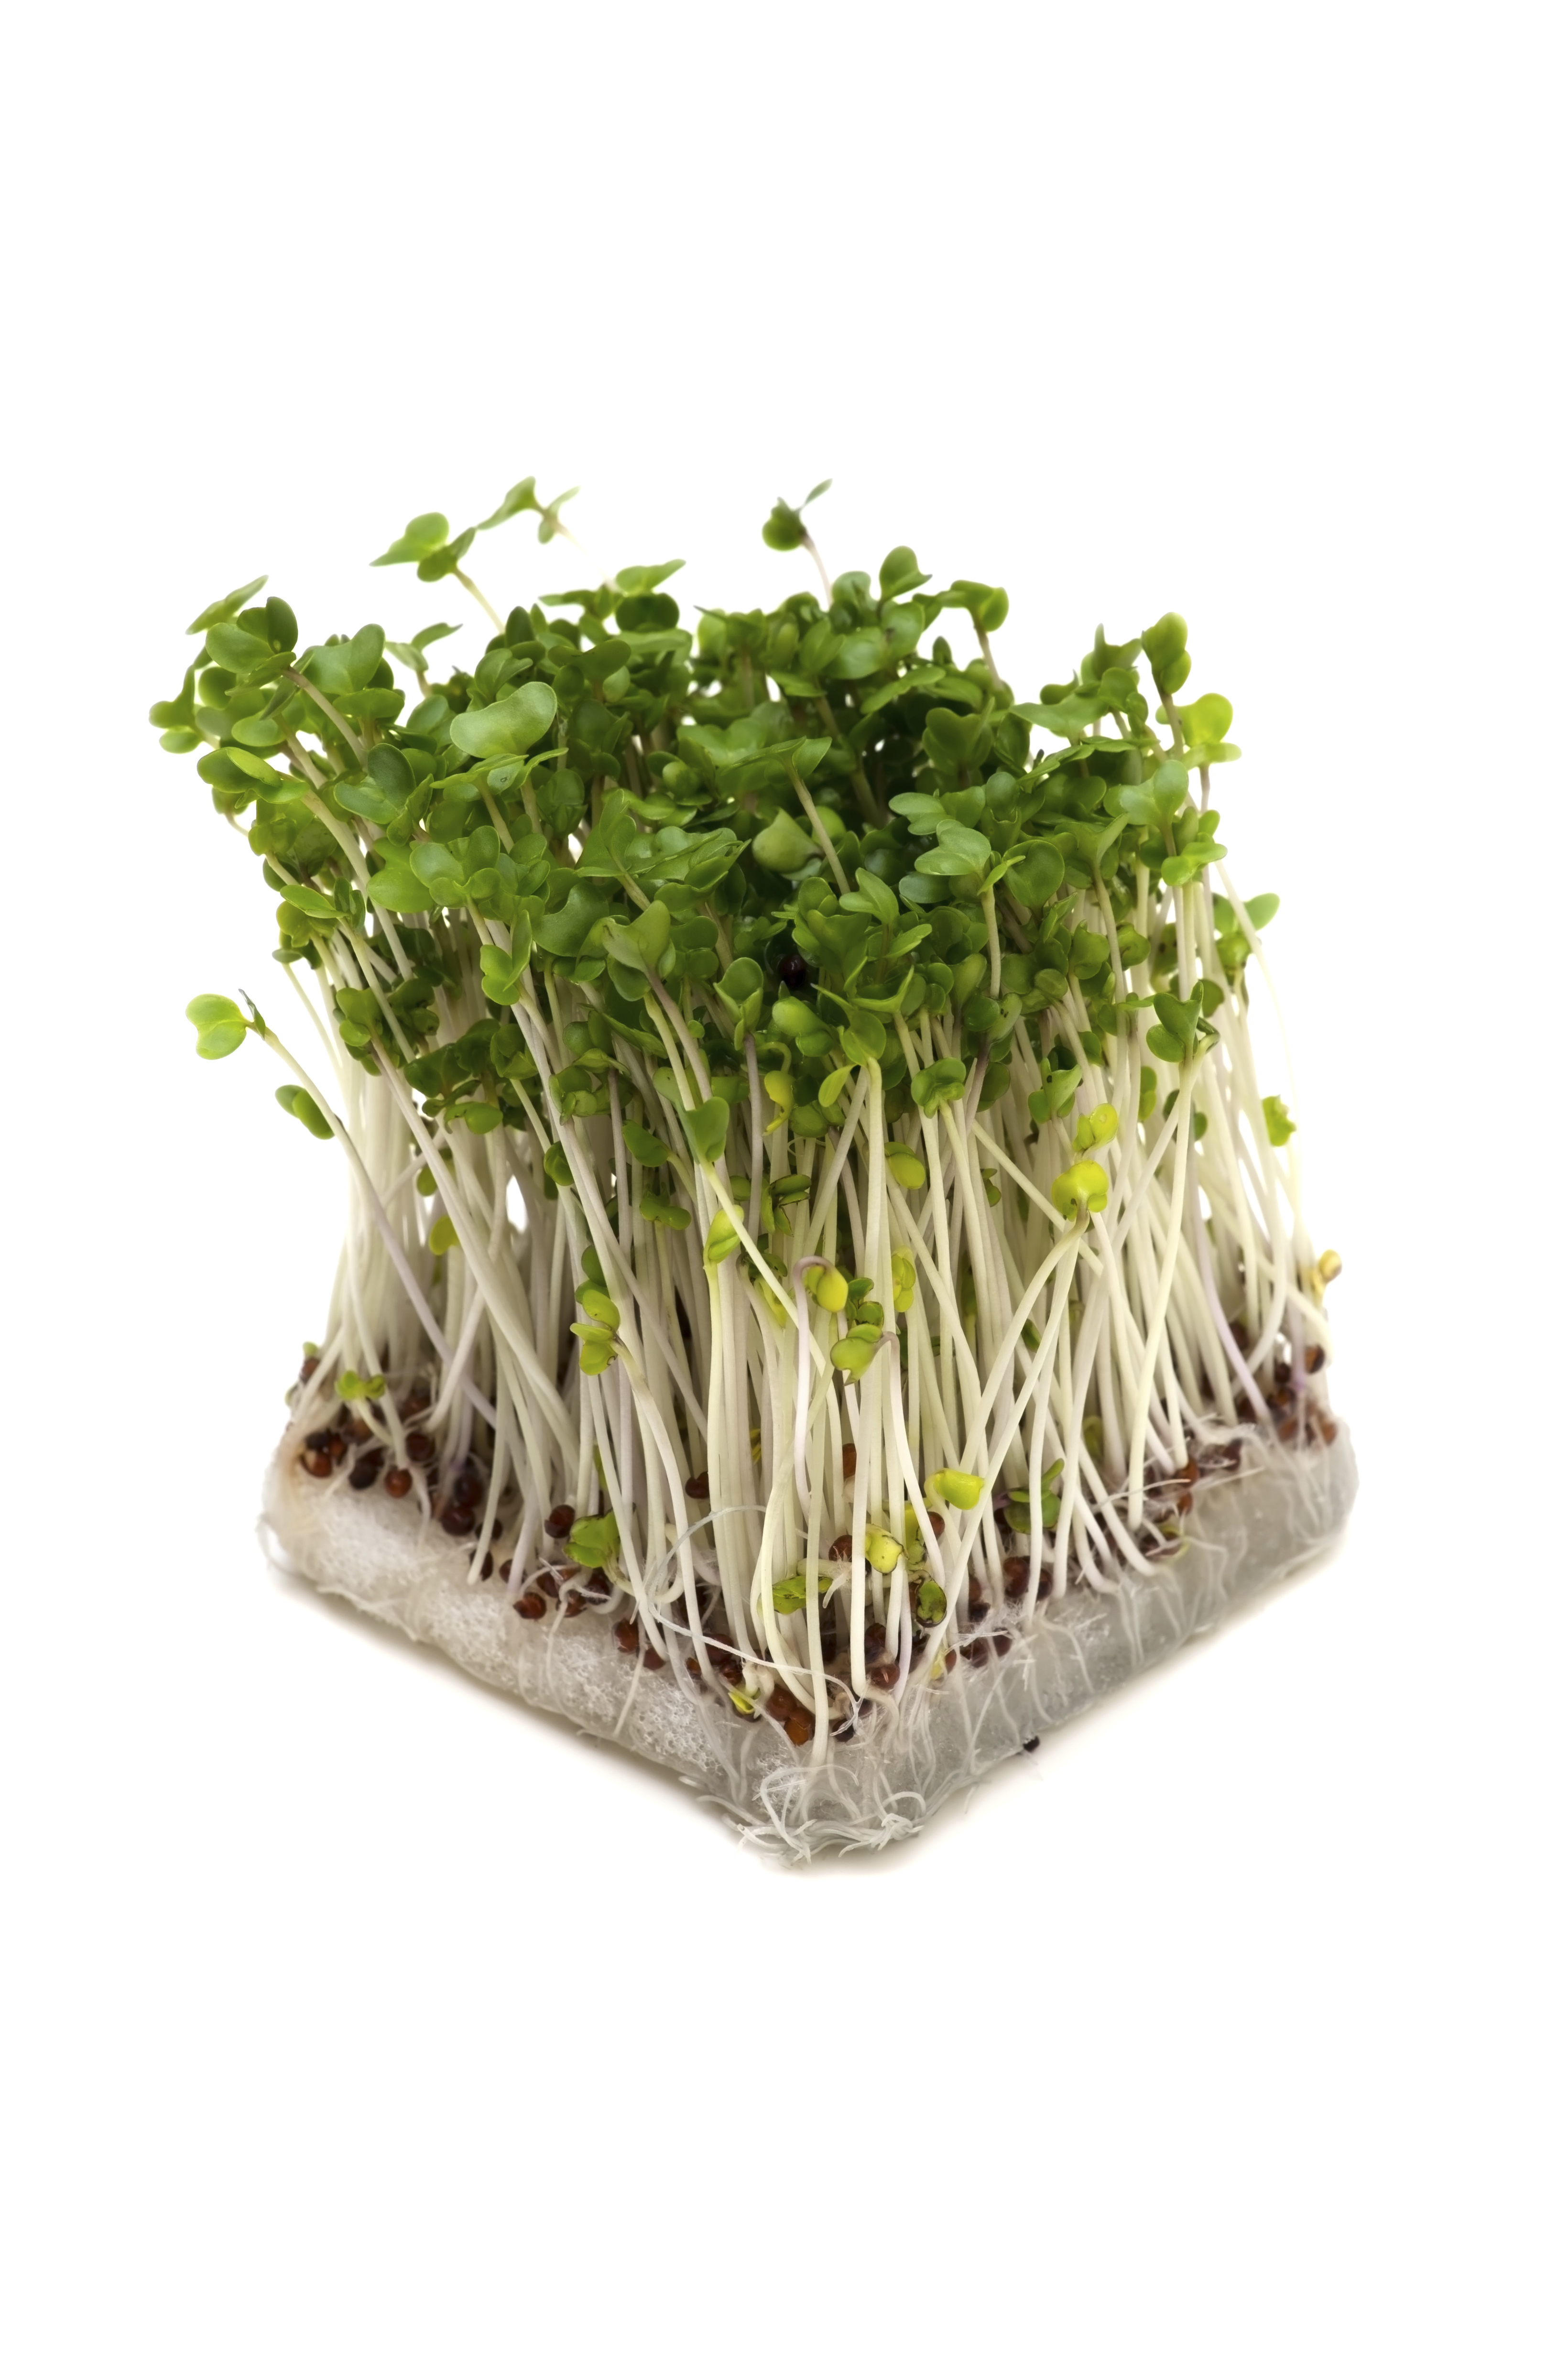 Benefits of broccoli sprouts | Cancer Survivors Network